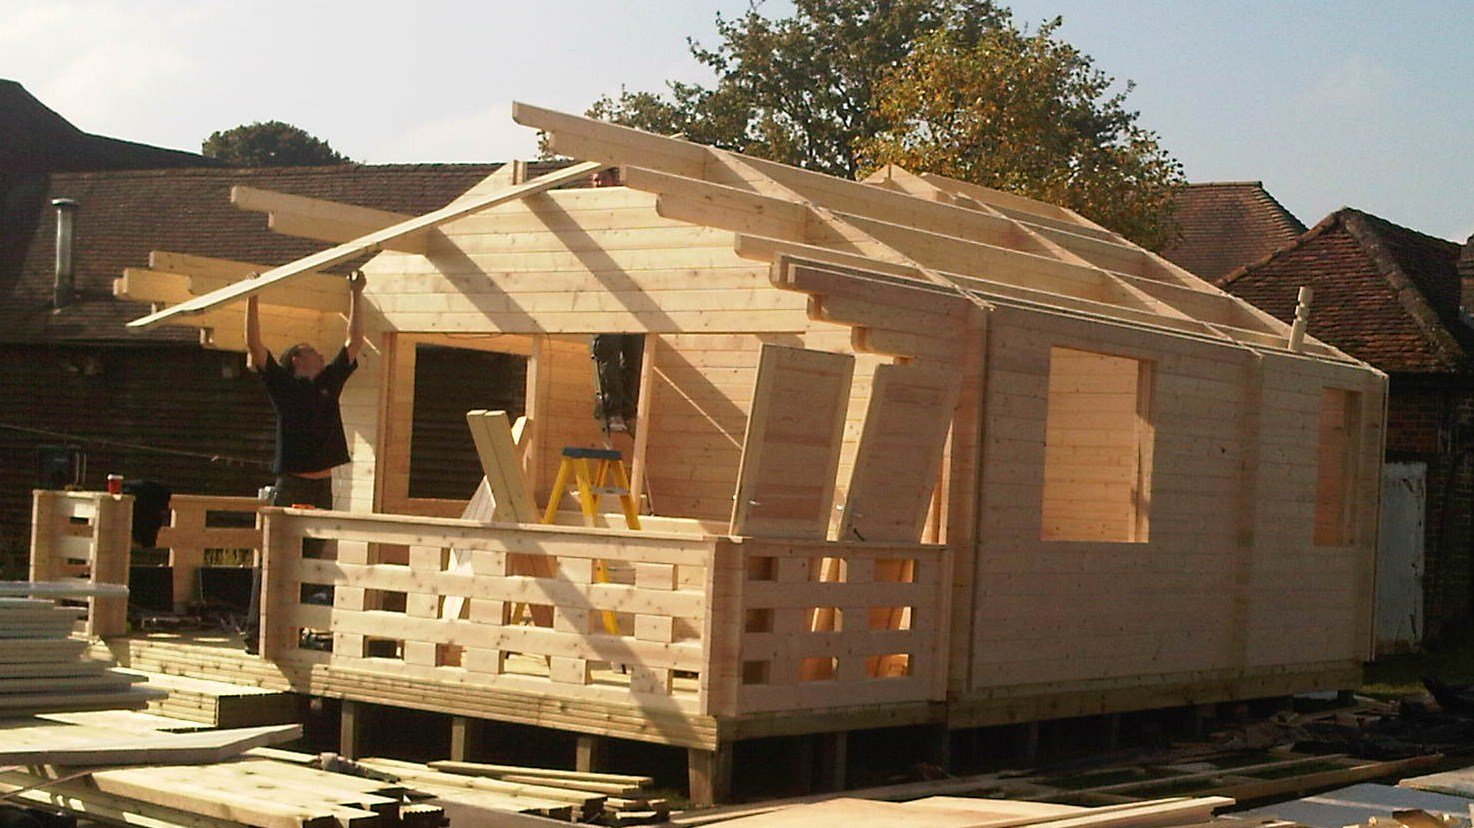 Cabin walls are completed and the roofing beams are now being fitted